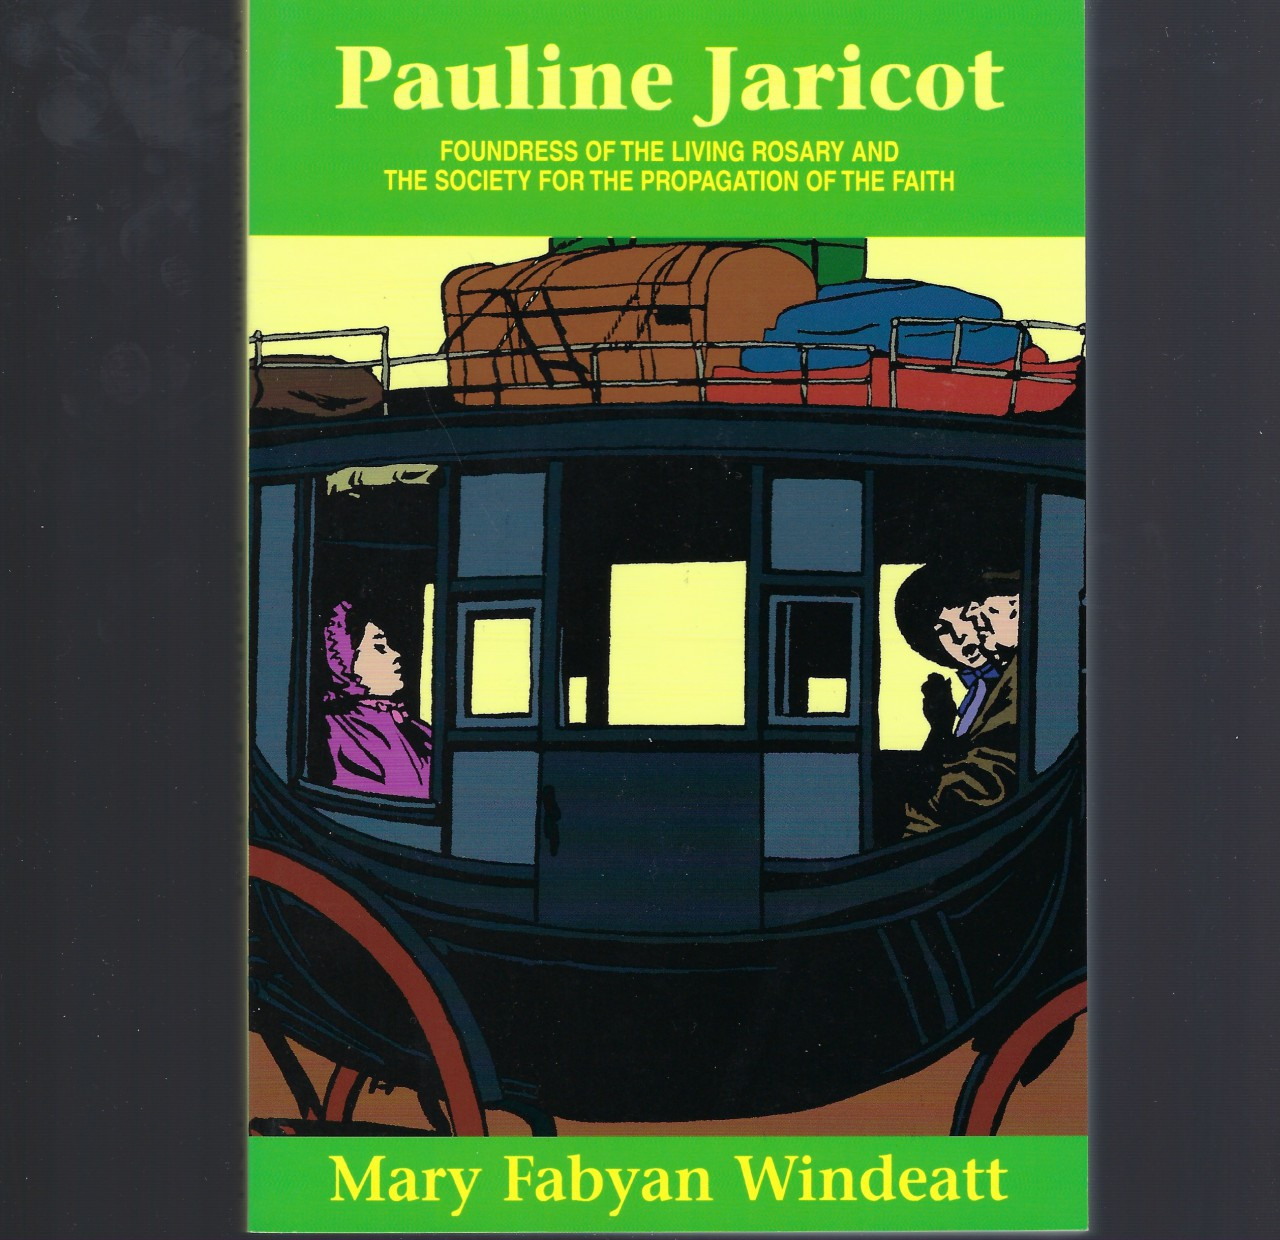 Pauline Jaricot Foundress of the Living Rosary and the Society for the Propagation of the Faith (New), Mary Fabyan Windeatt